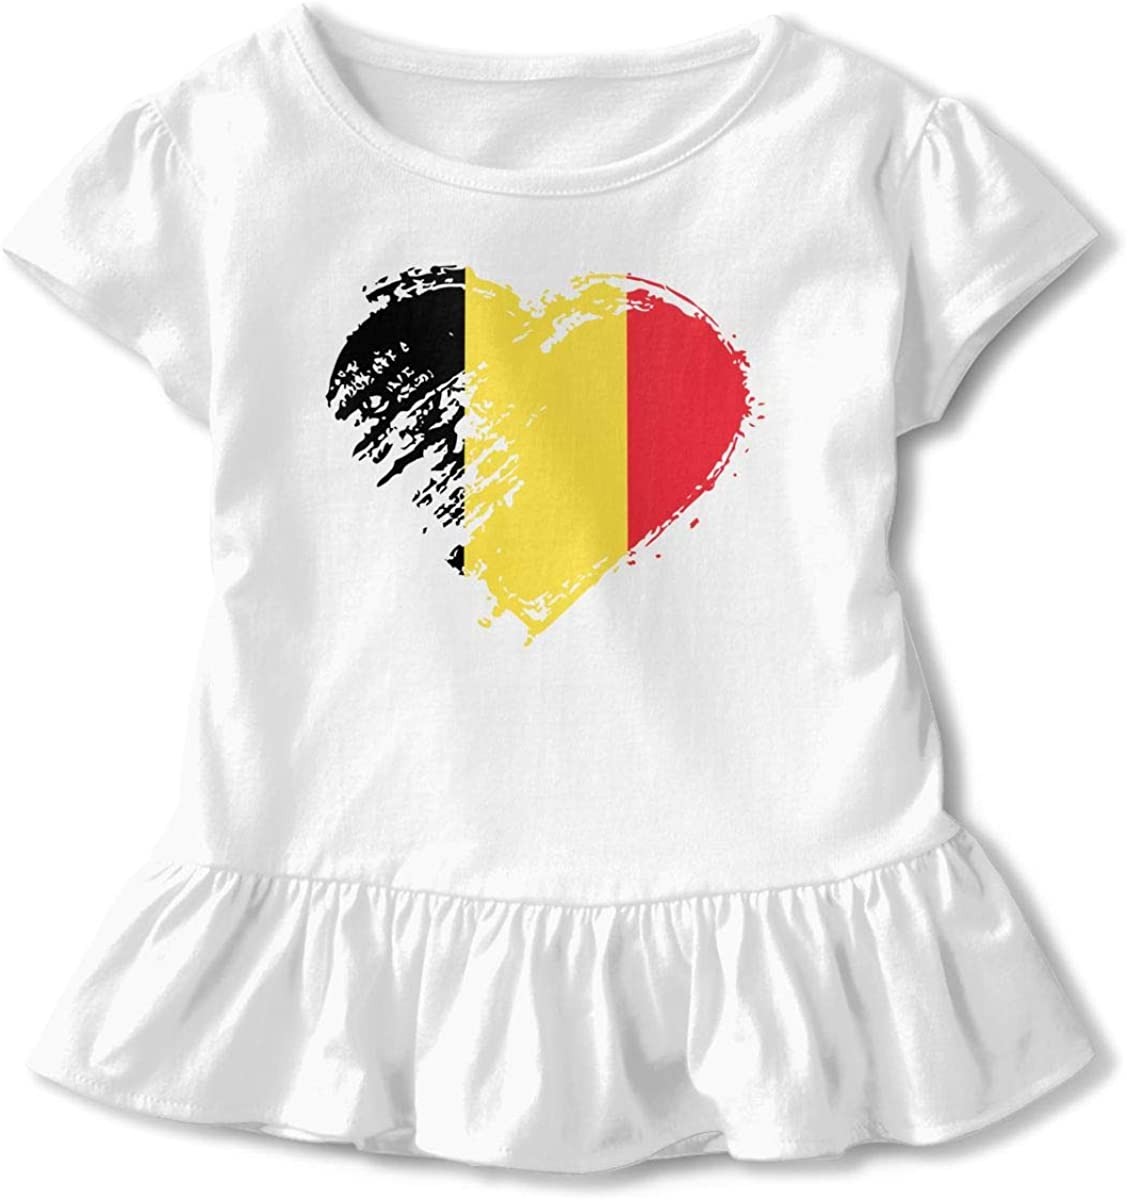 I Love Belgium Heart Flag Toddler Girls Short Sleeve Graphic Top